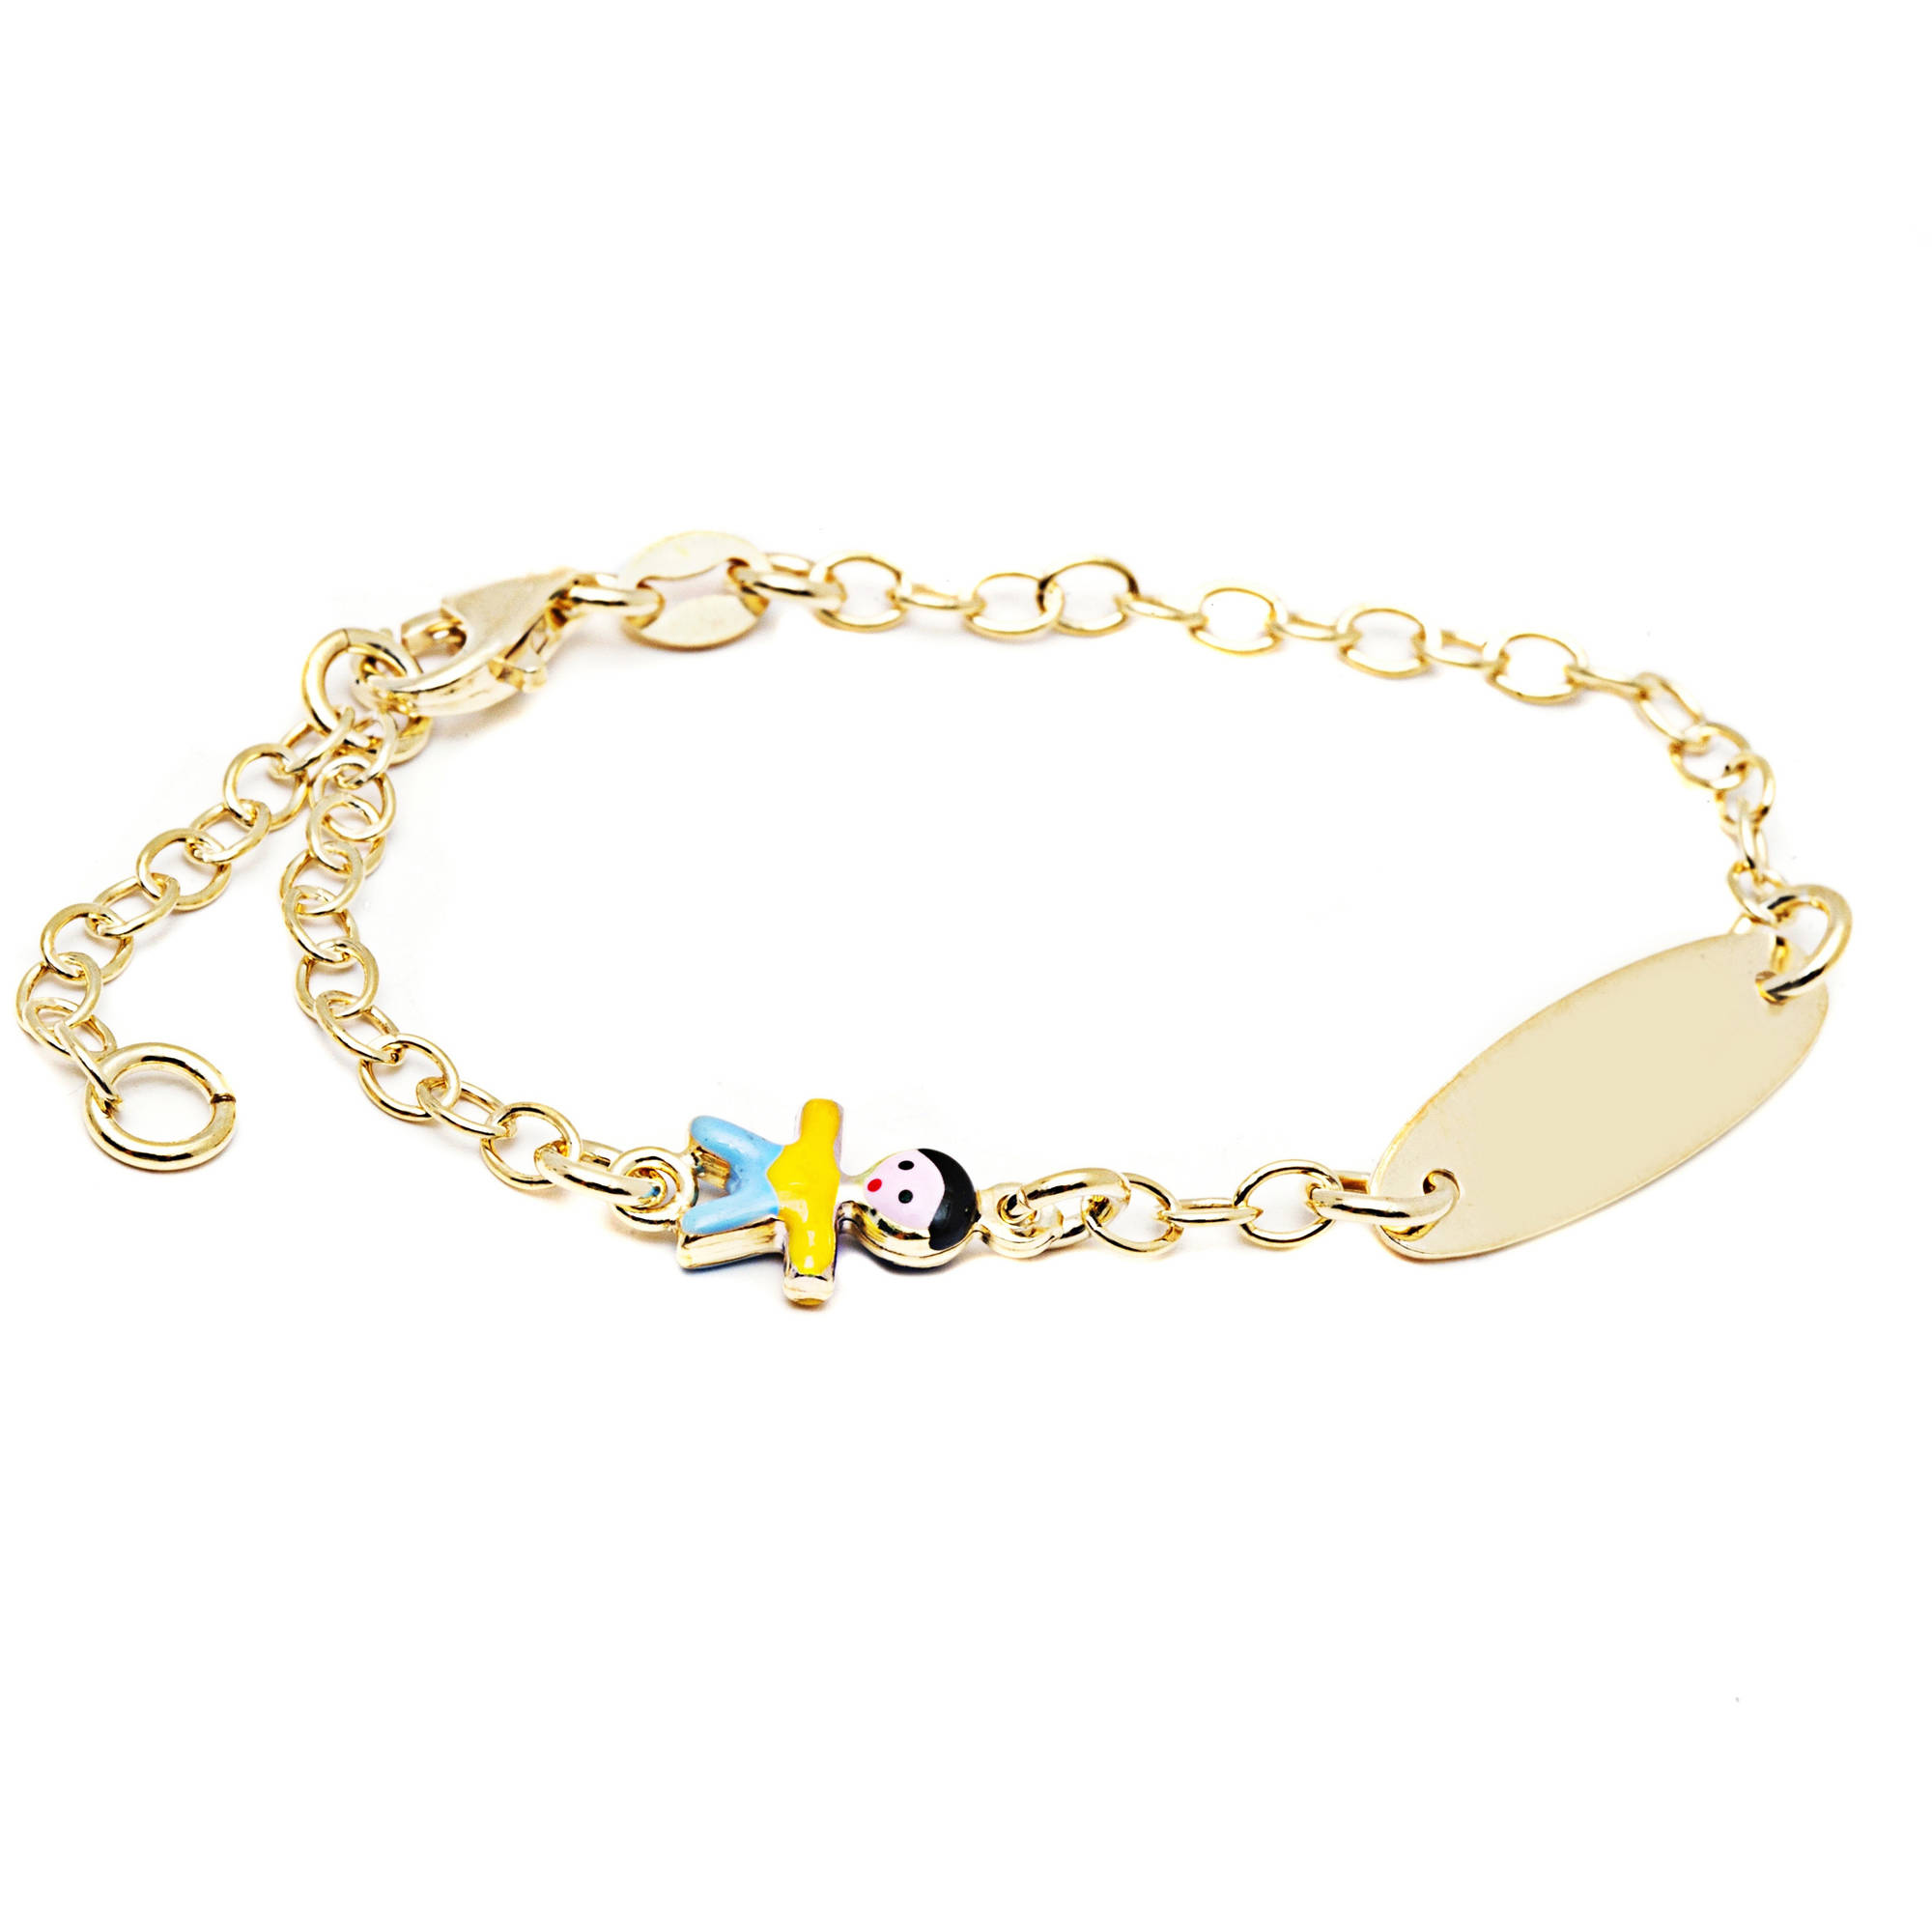 Pori Jewelers 18kt Gold-Plated Sterling Silver ID Baby Bracelet with Enamel Charm, 6